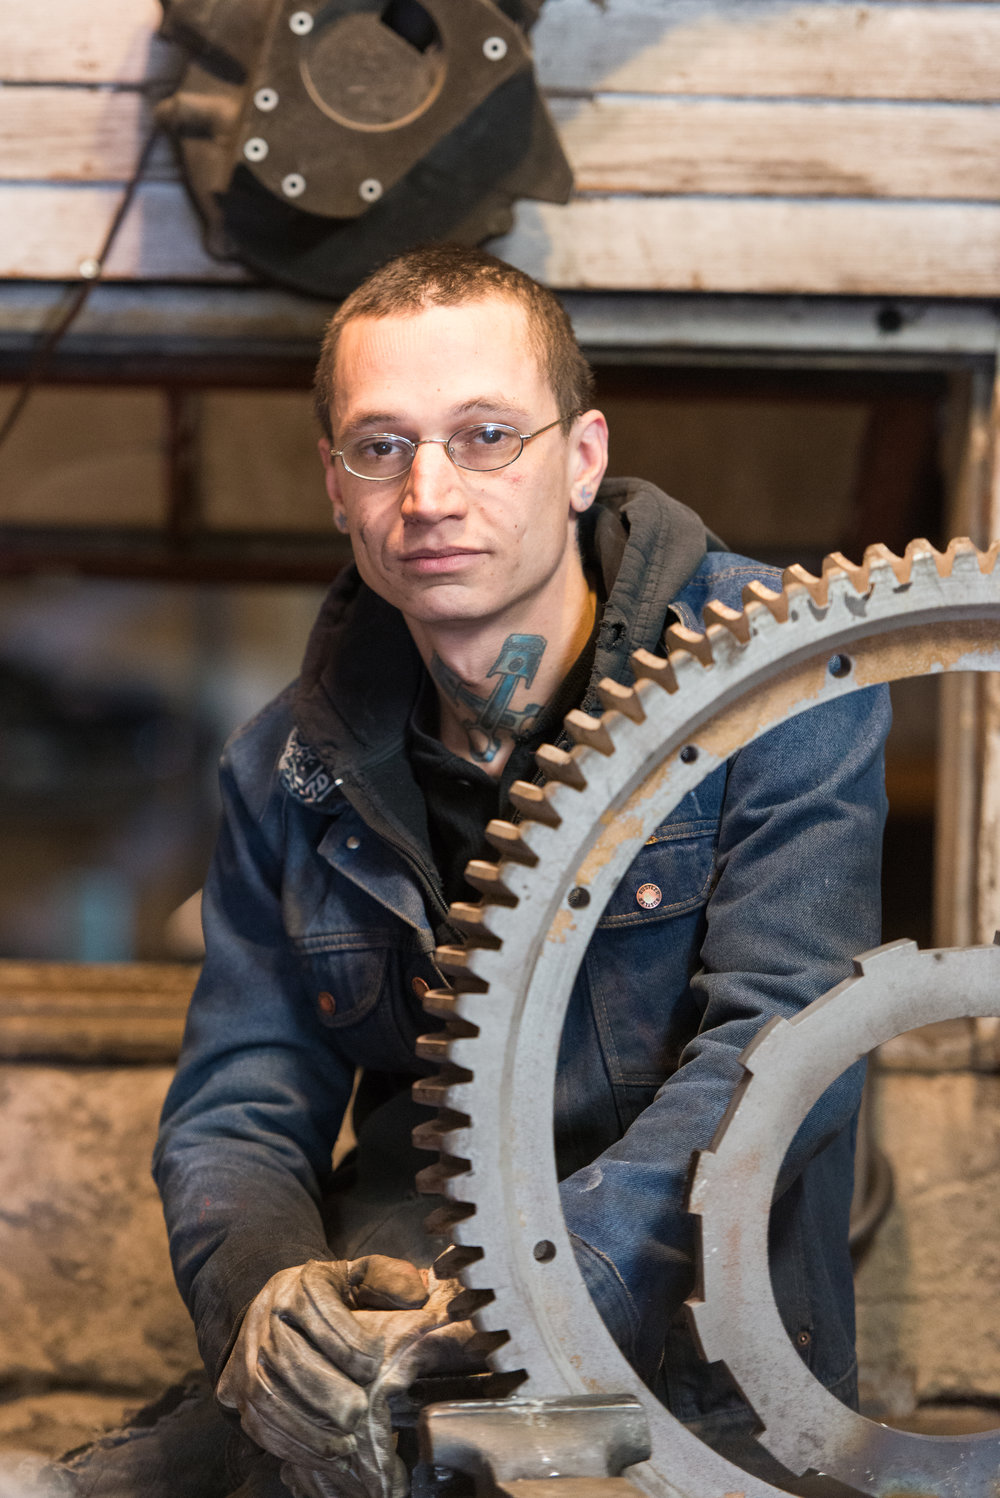 Custom motorcycle specialist, Jacob Smith,  worked with Joshua Faye. Jacob has over a decade of experience in metal fabrication and welding, utilizing his skills and talent to create one-of-a-kind motorcycles, sculptures and gates.